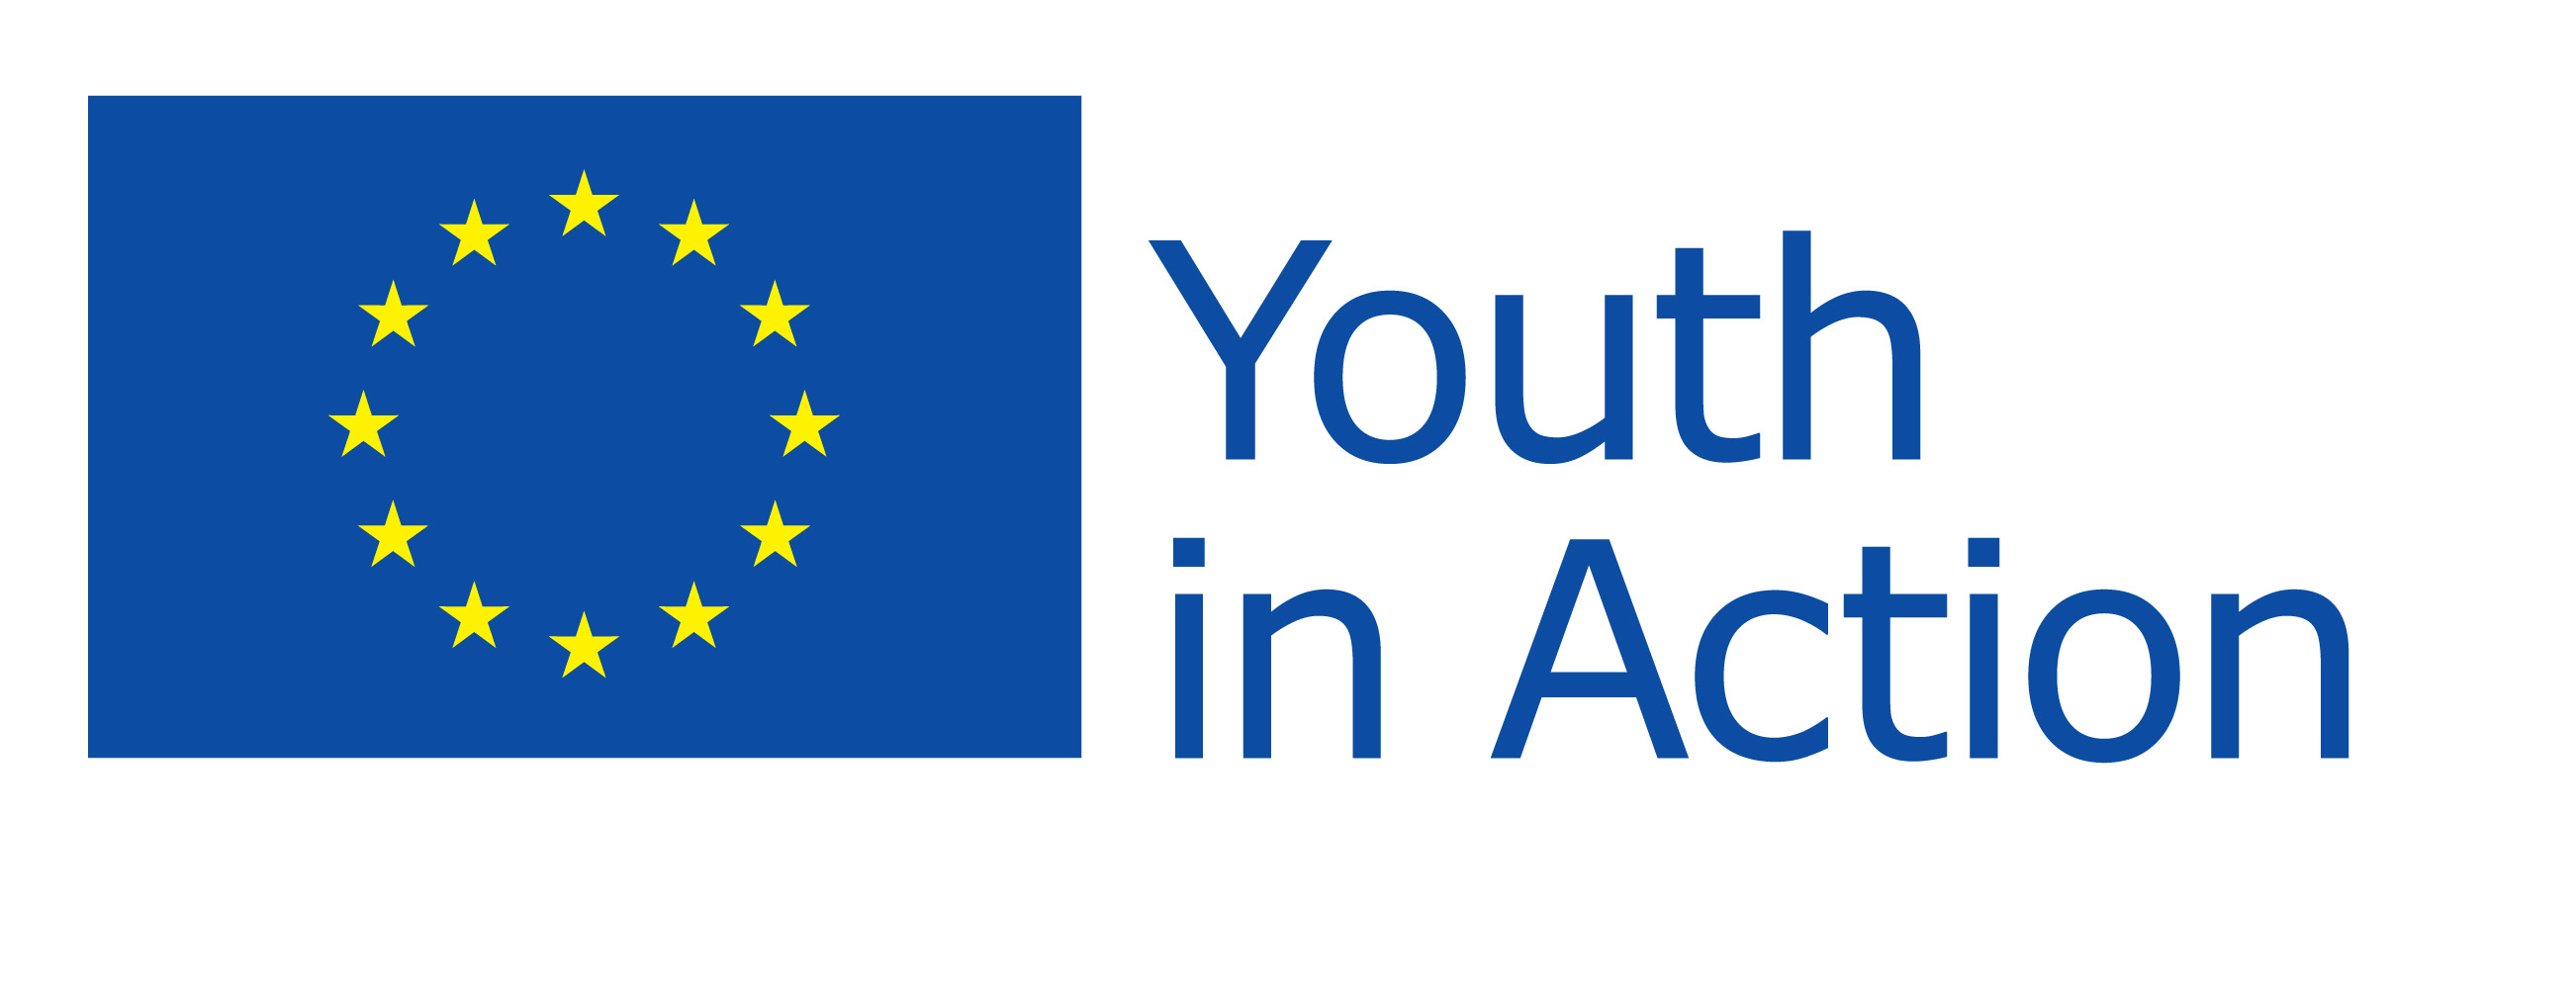 Youth in Action project